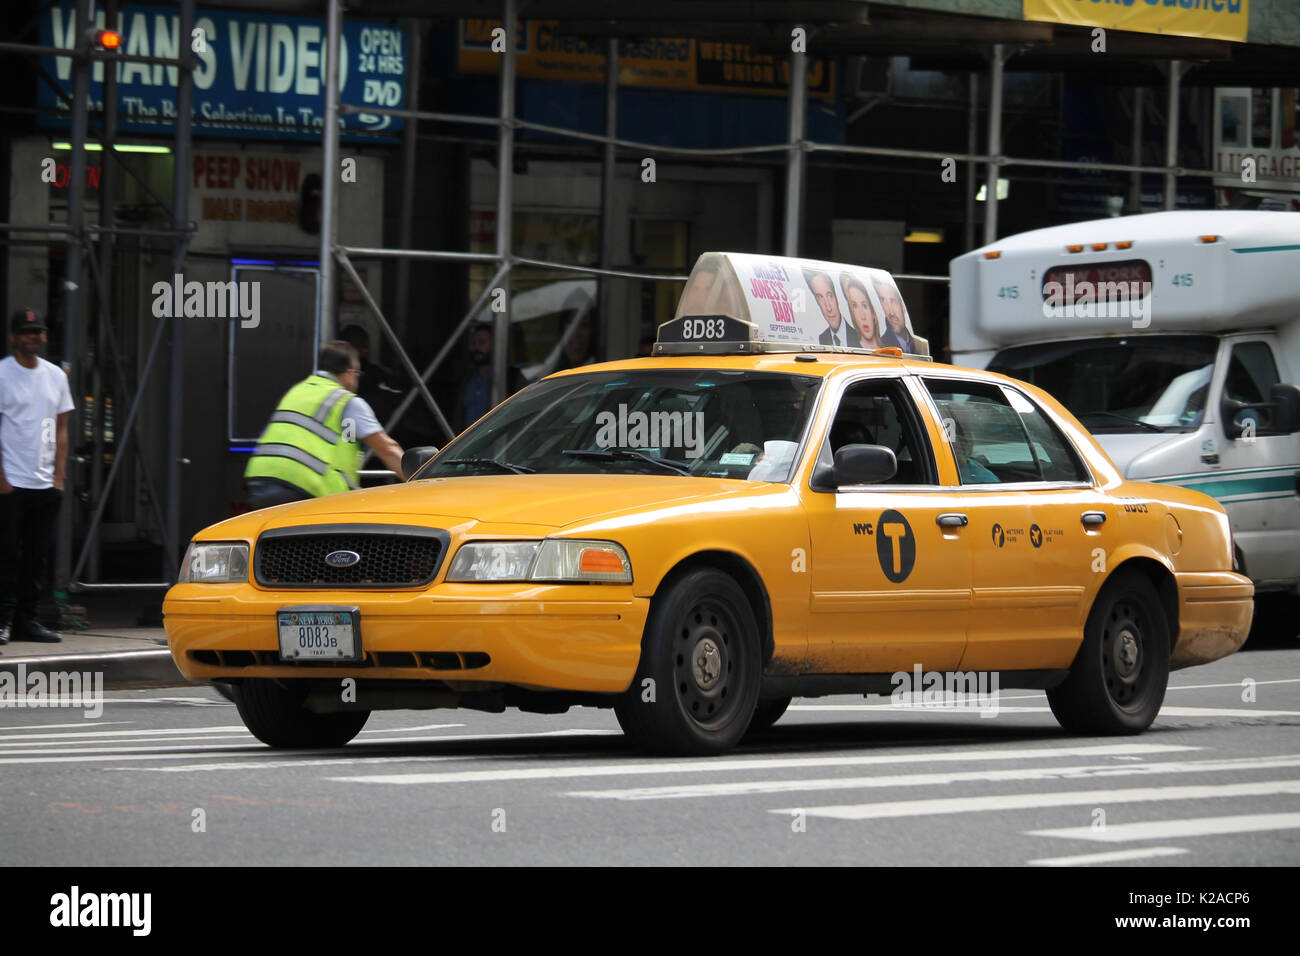 Ford Taxi Stock Photos Images Alamy 1949 Crown Victoria New York City Cab In Midtown Manhattan Image